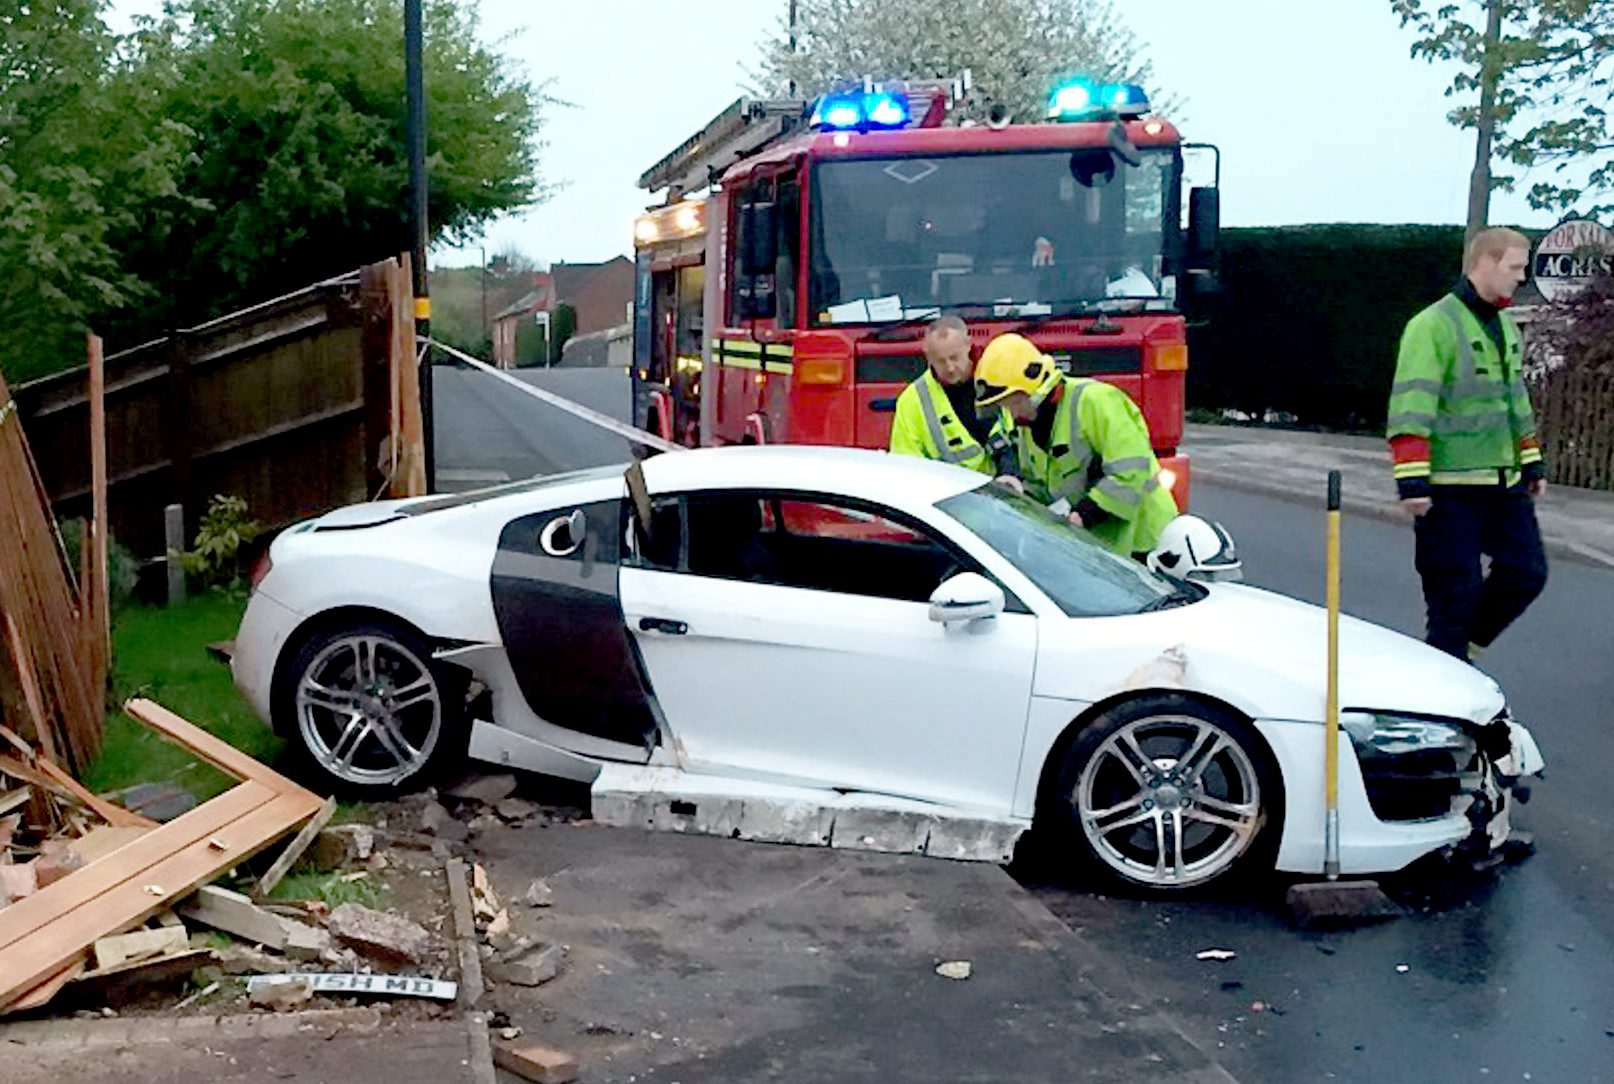 The dramatic aftermath when a £100,000 sports car lost control and smashed into a house in Sutton Coldfield. (Picture: NTI)